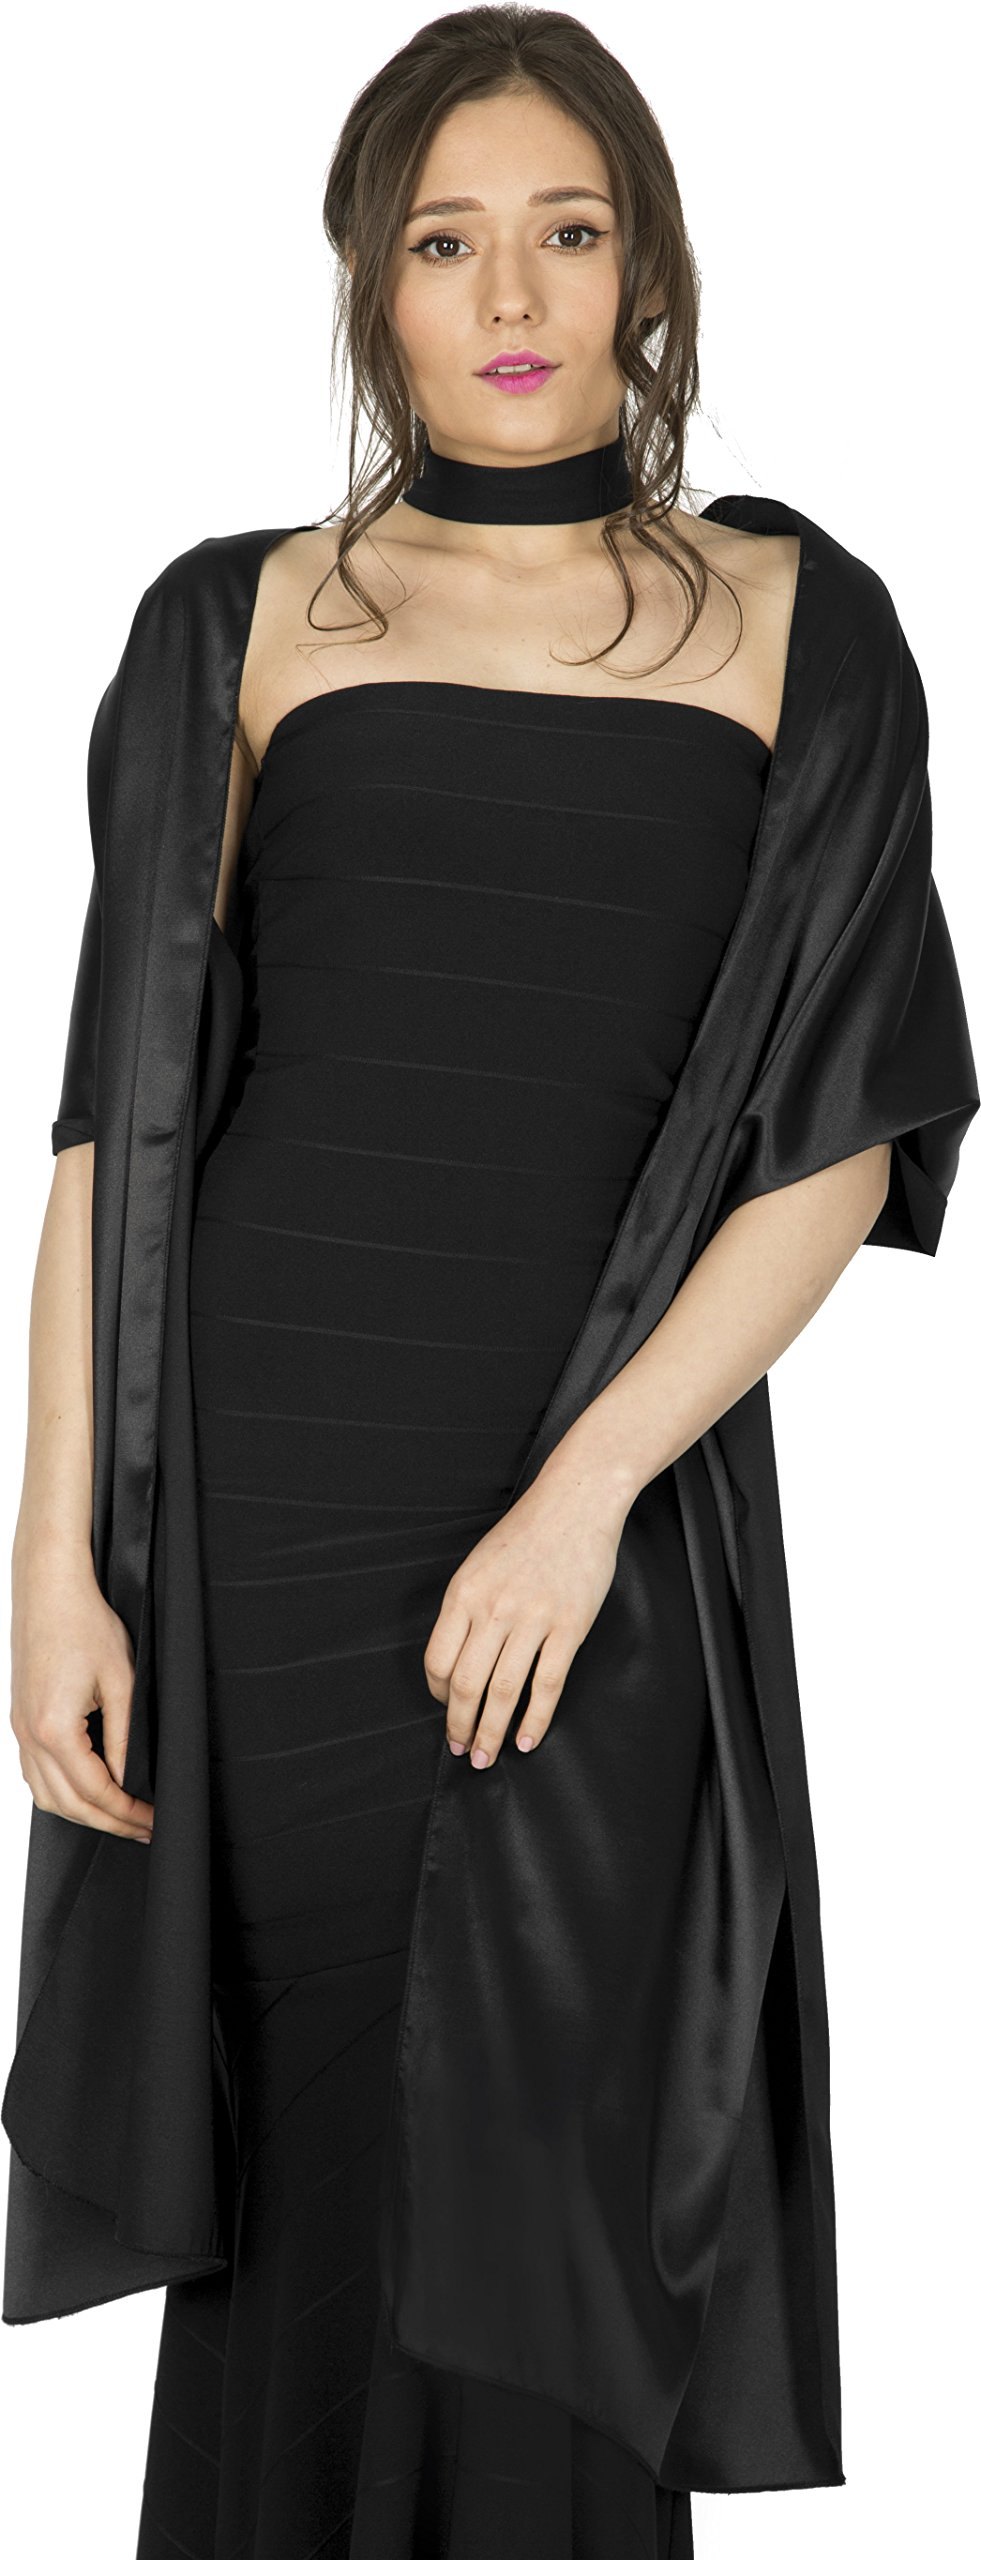 Black Shawls and Wraps for Evening Dresses: Amazon.com